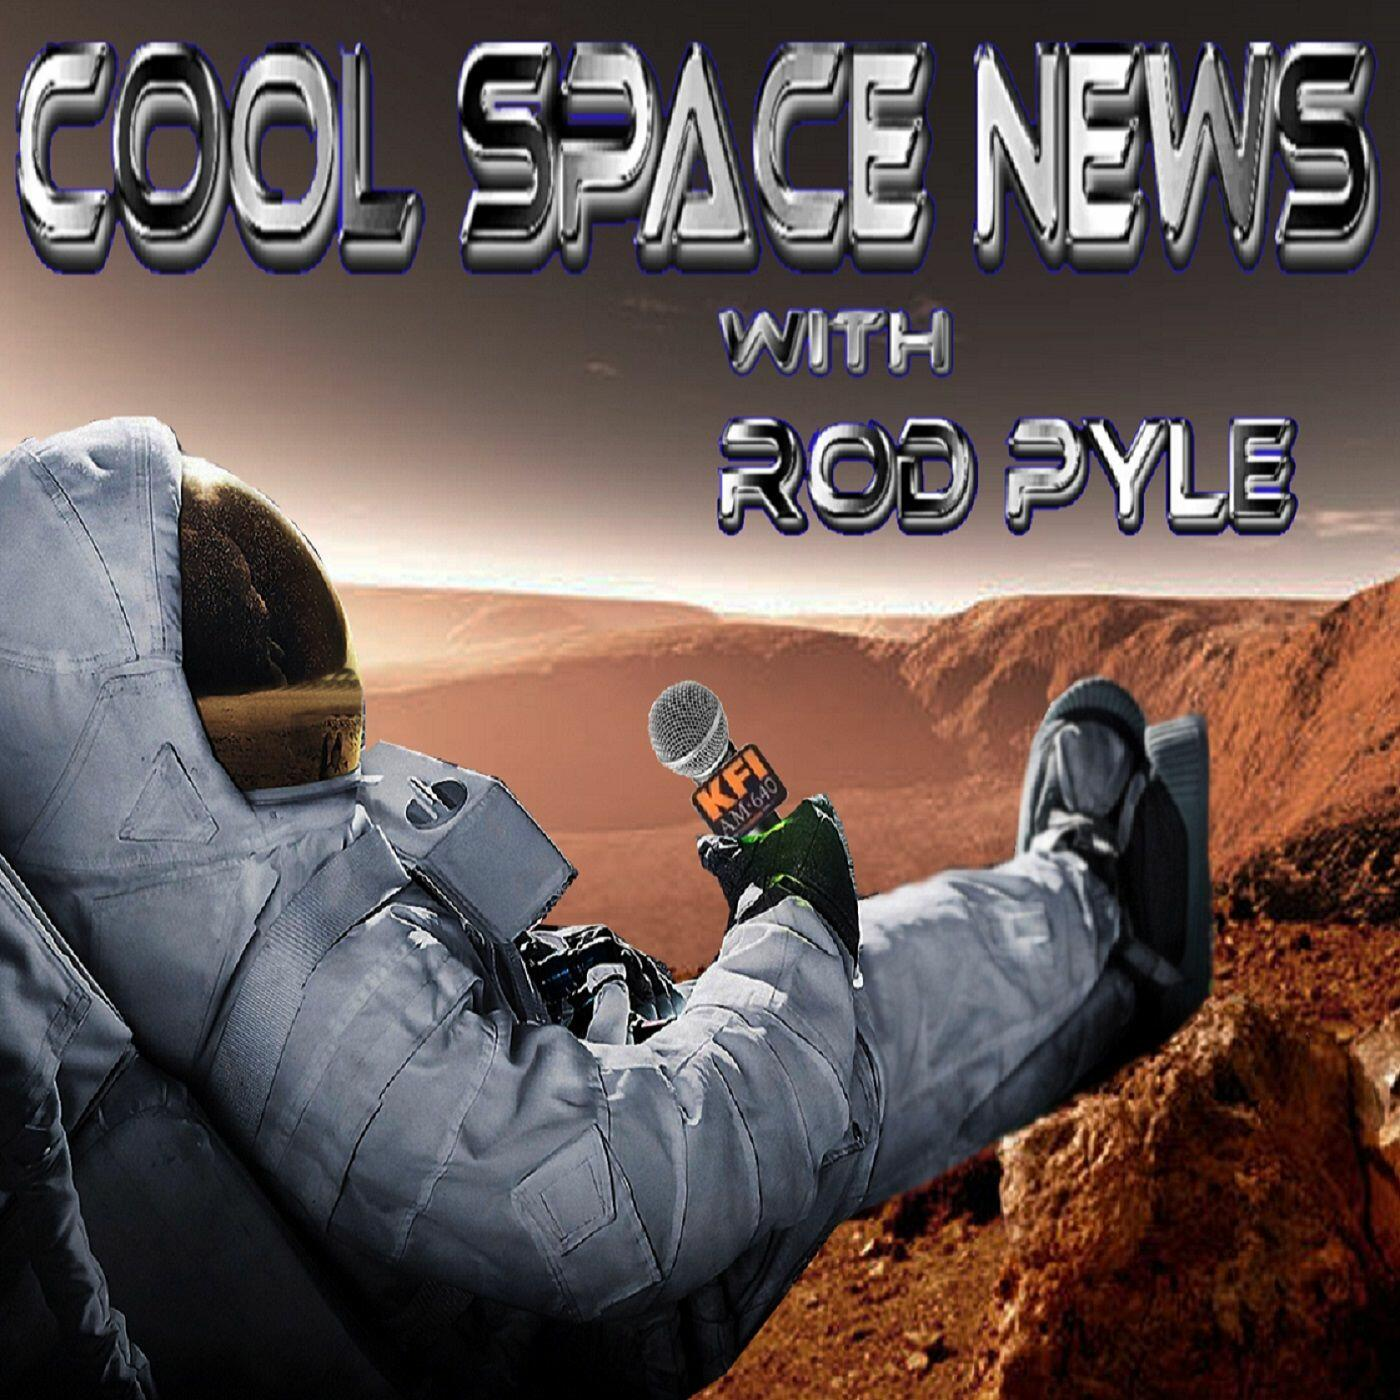 Listen to the Cool Space News with Rod Pyle Episode - The Truth is Out There on iHeartRadio | iHeartRadio